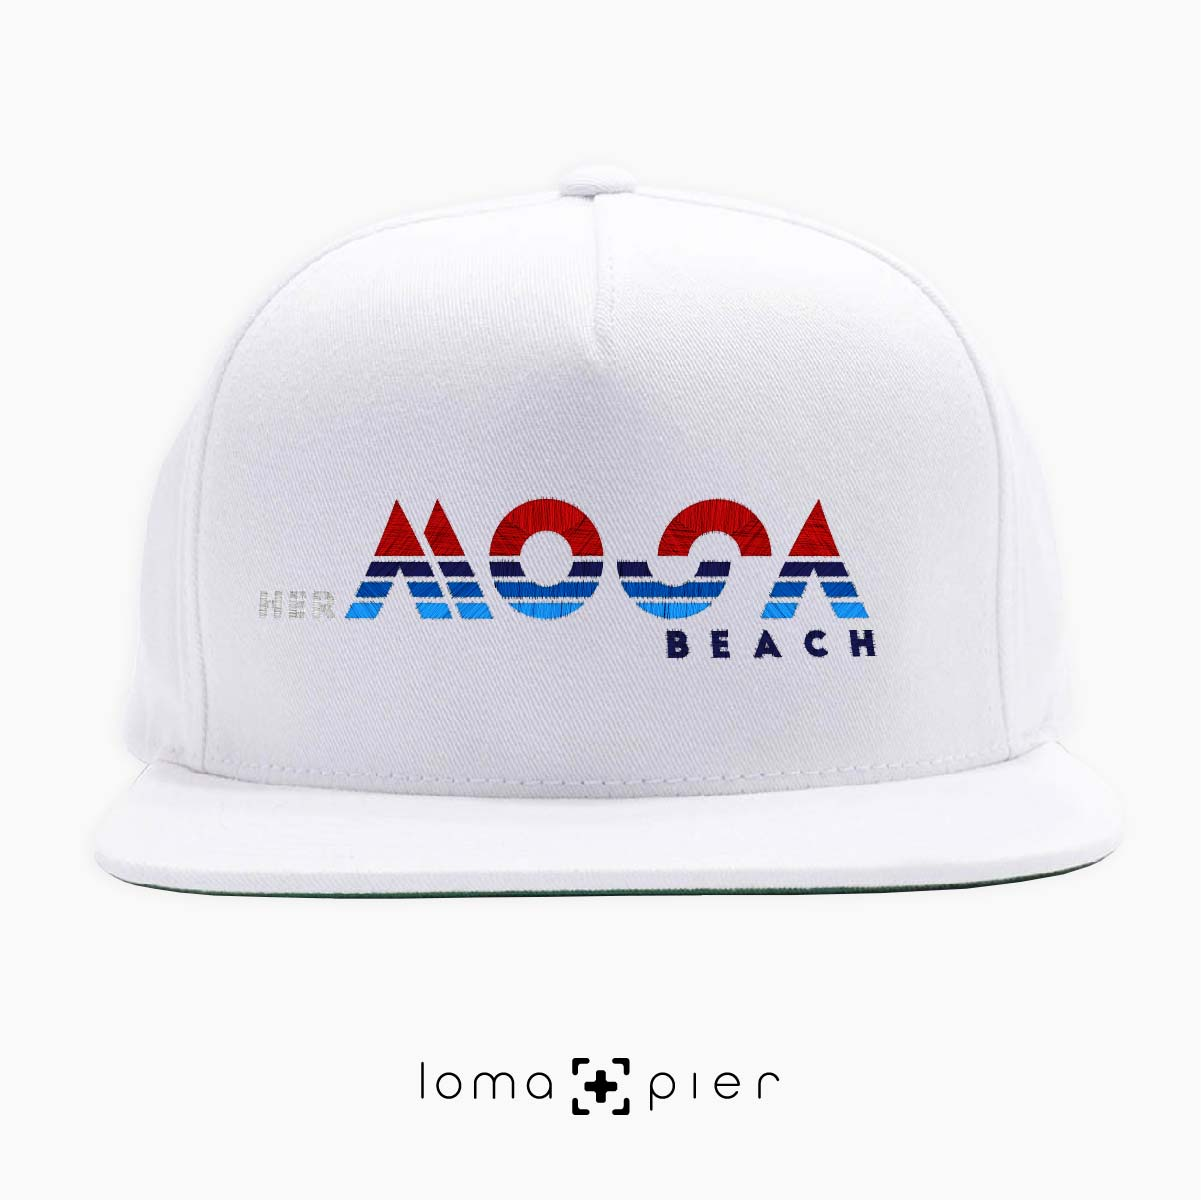 herMOSA beach snapback hat by loma and pier hat shop